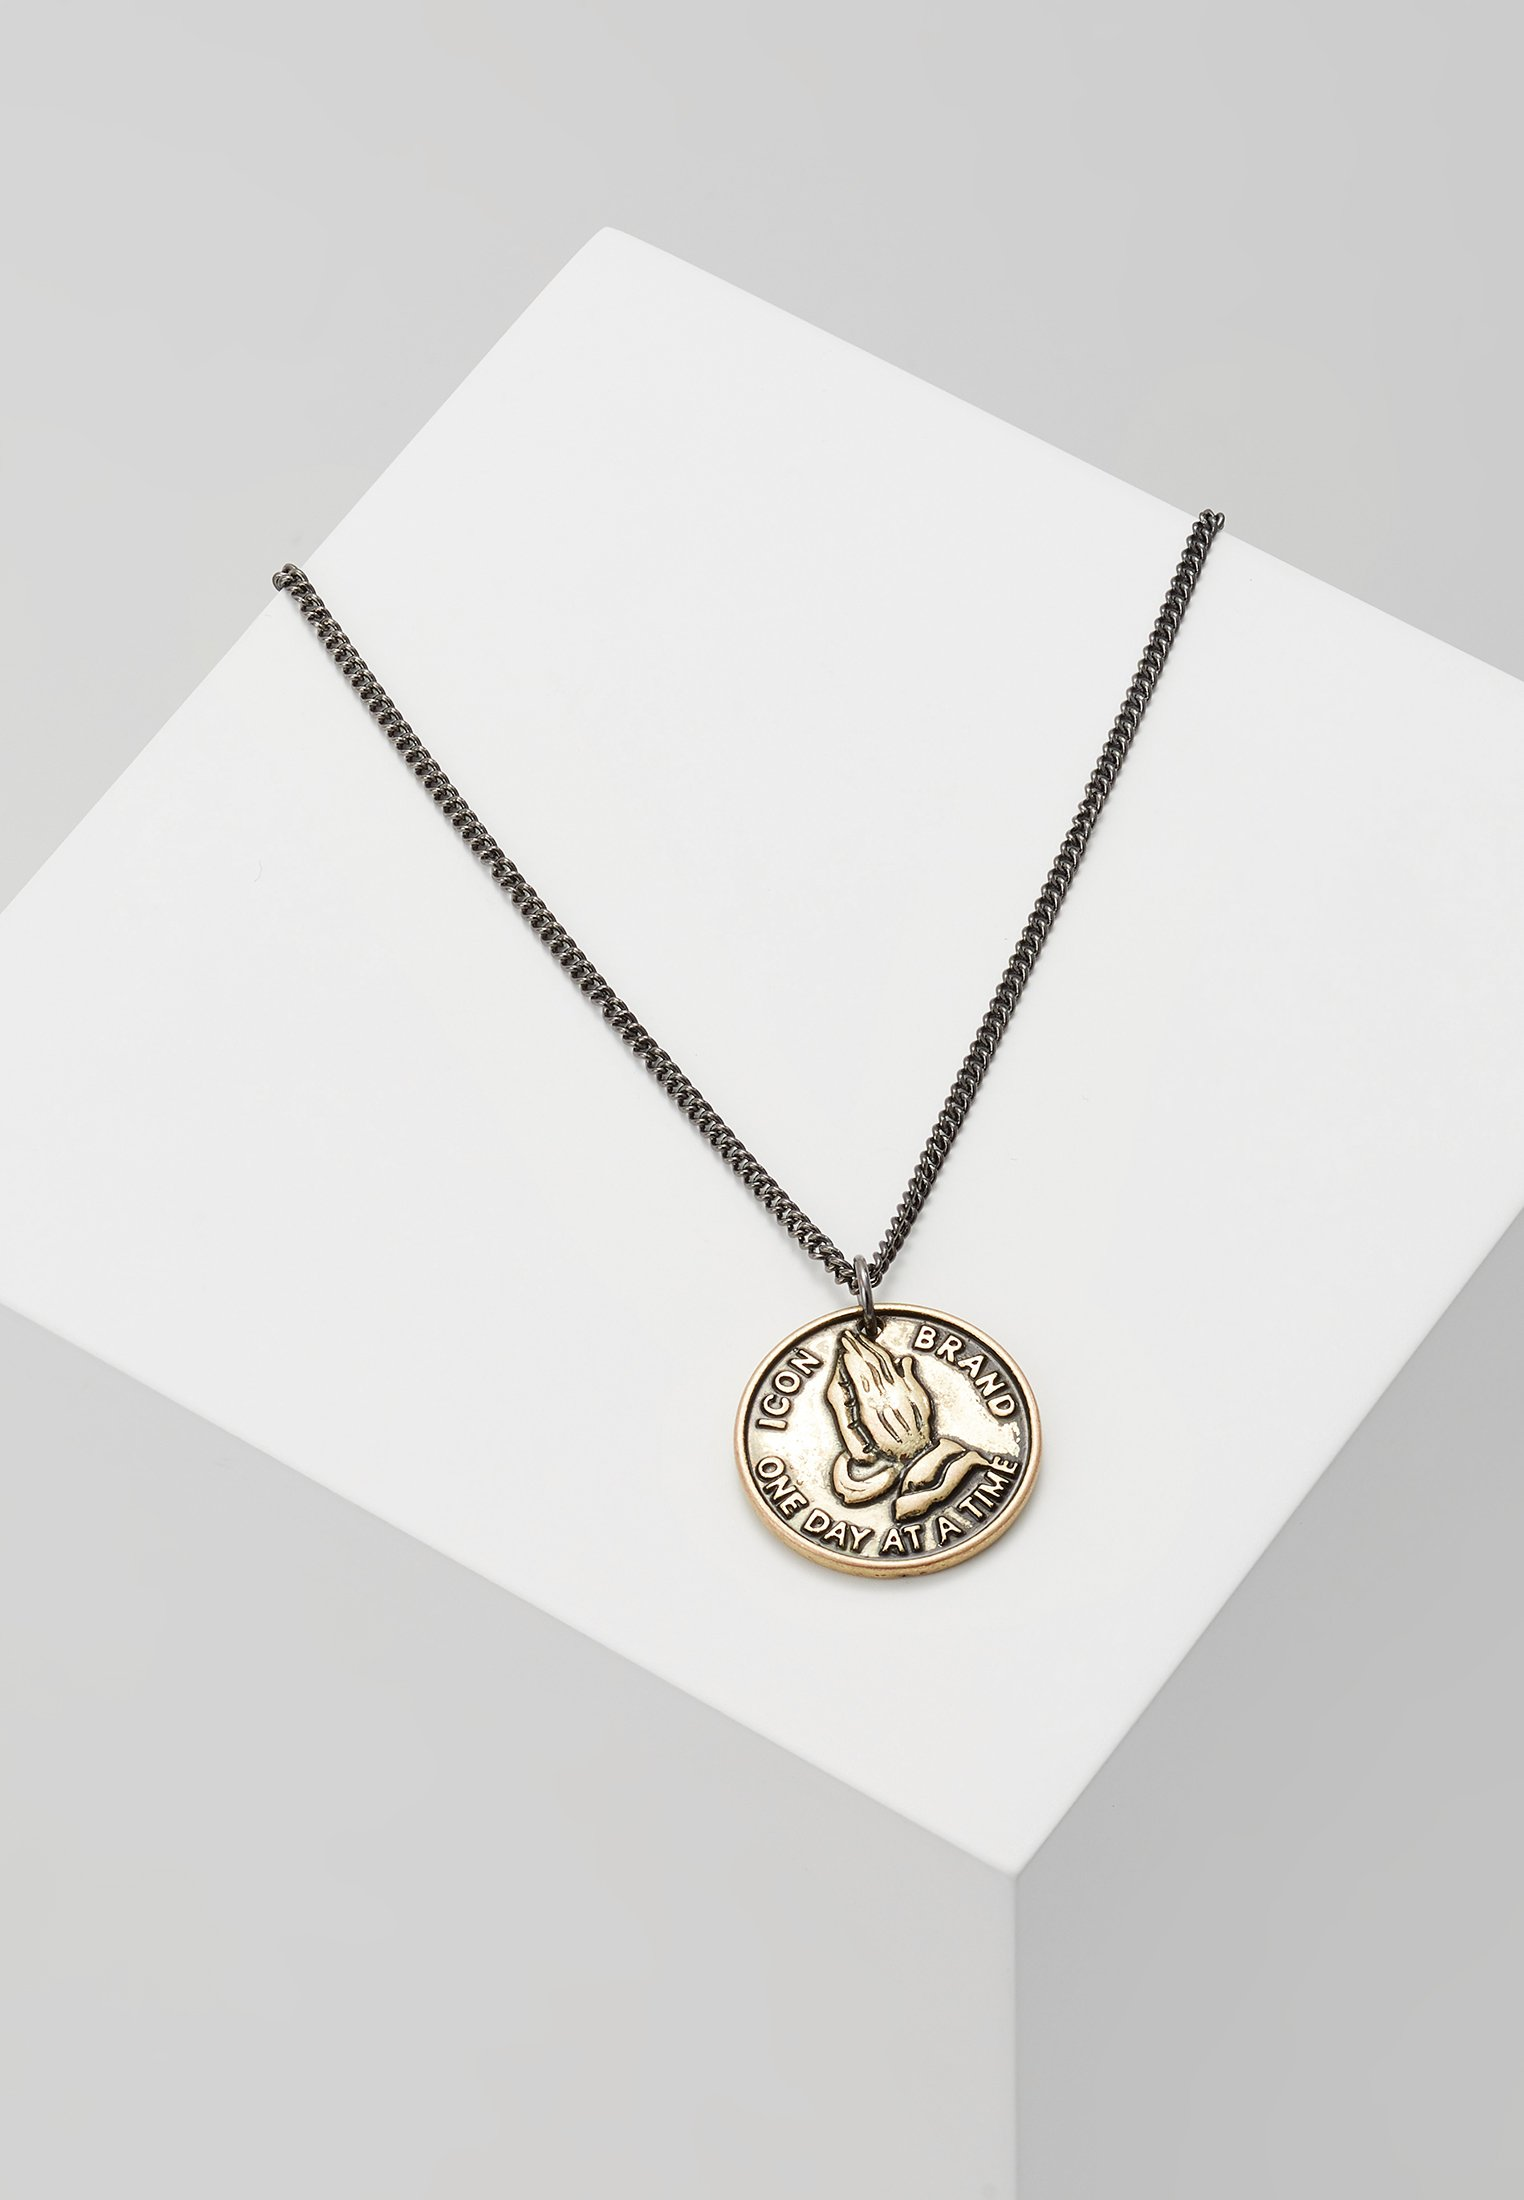 Pray And Icon Gold coloured DisplayCollier Brand txdshQrC